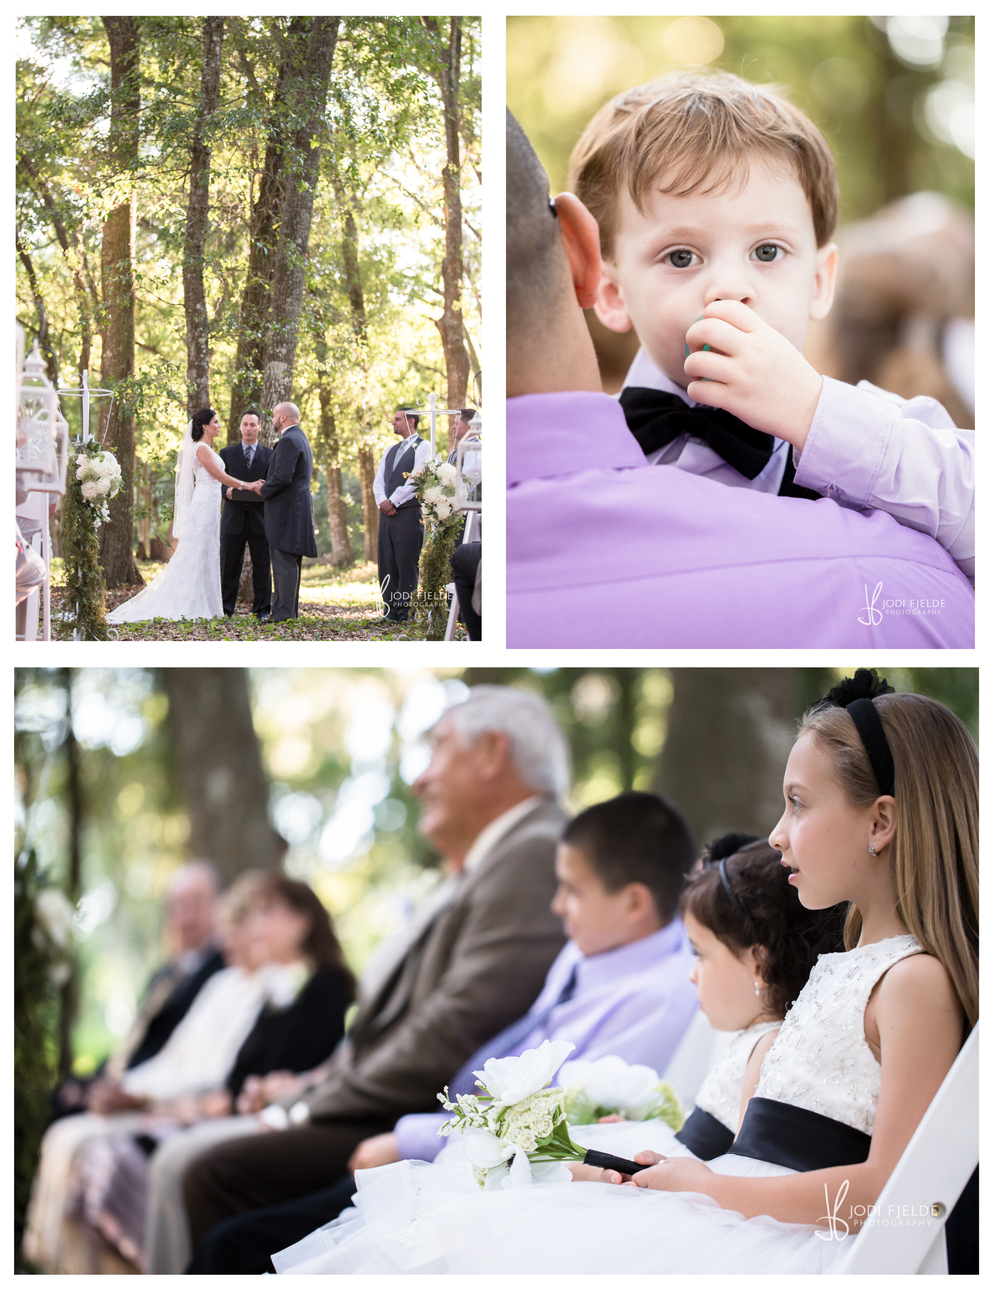 Highland_Manor_Apopka_Florida_wedding_Jackie_&_Tim_photography_jodi_Fjelde_photography-14.jpg